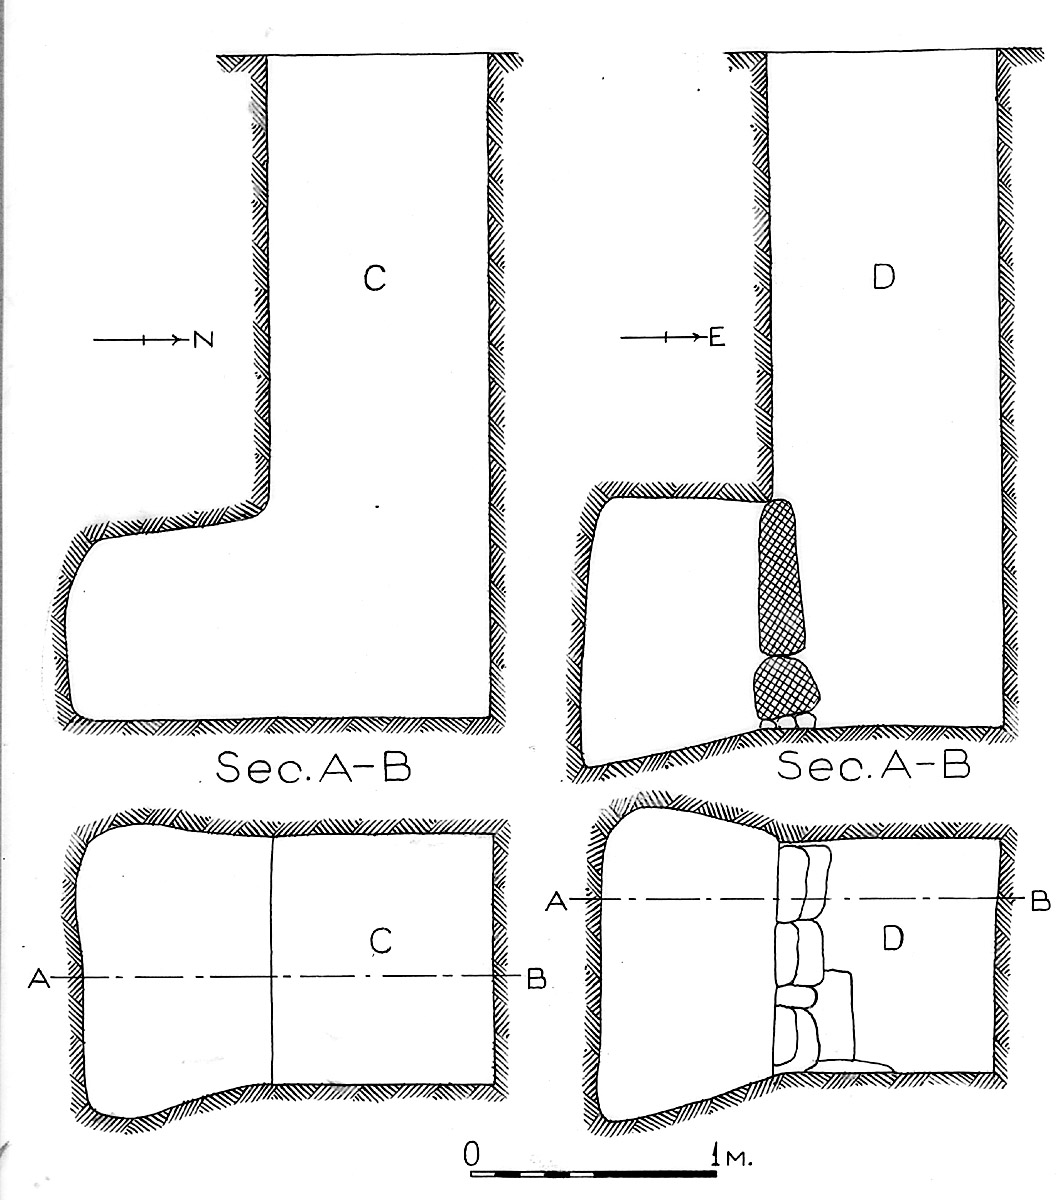 Maps and plans: G 1611, Shaft C and D